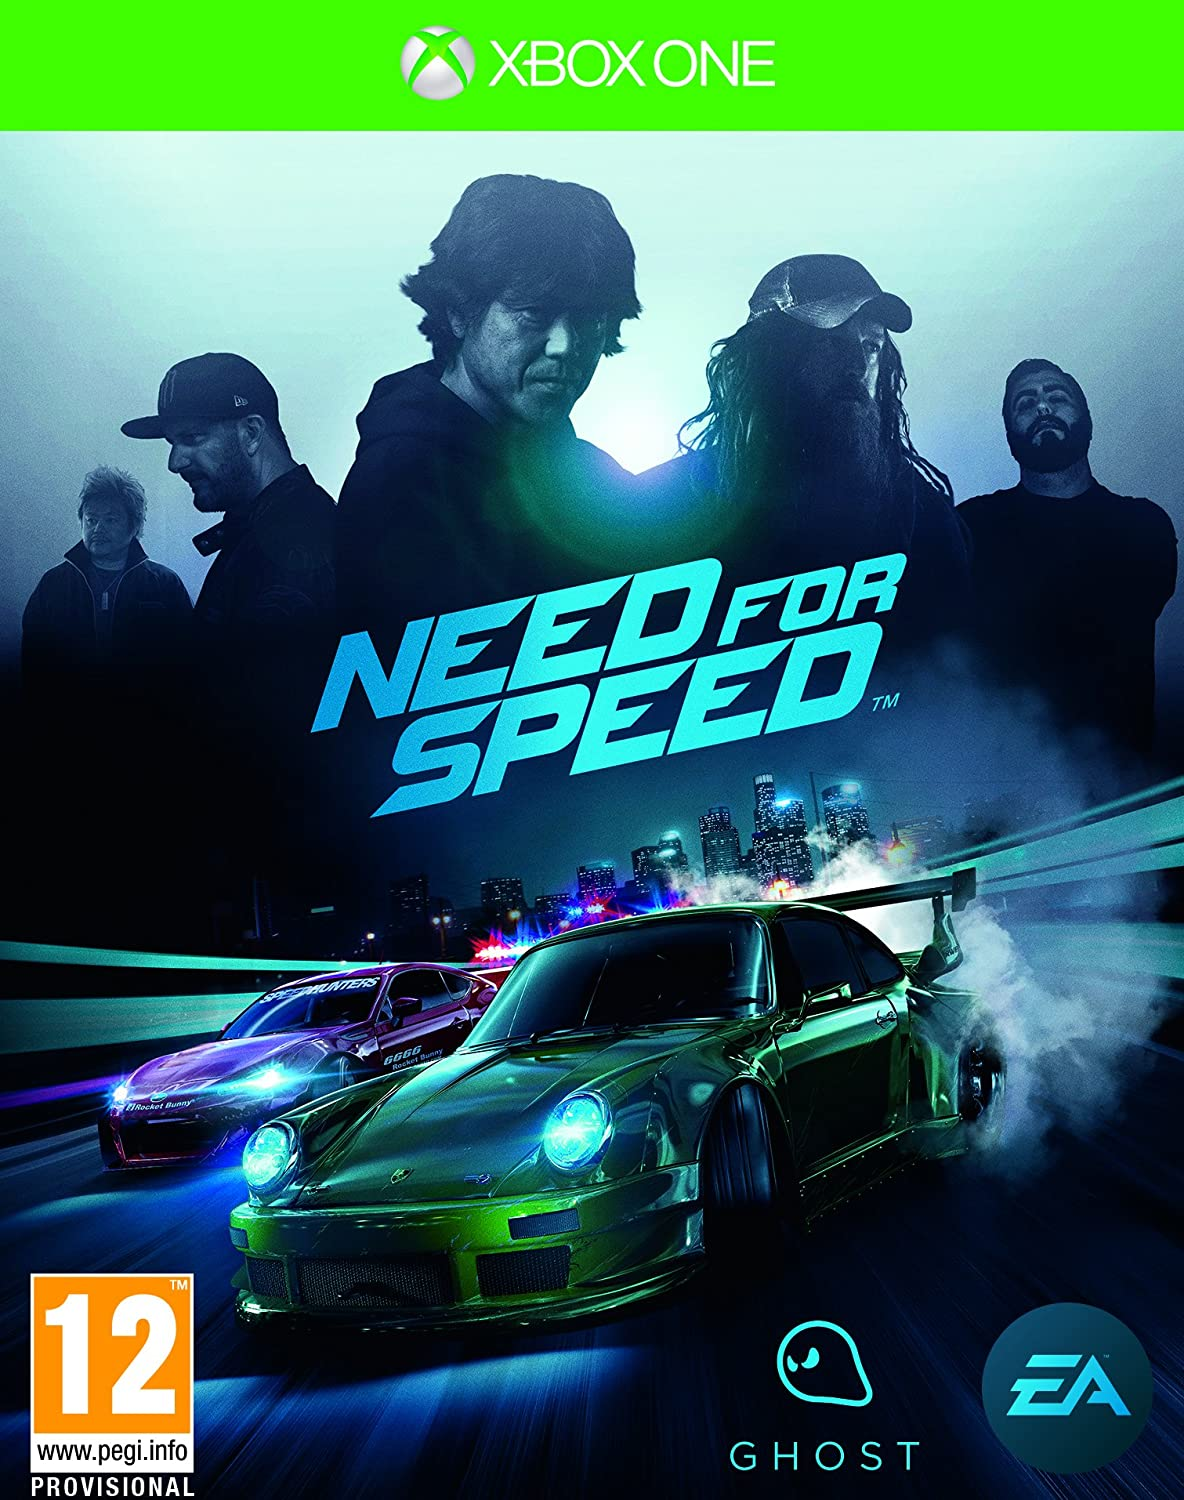 Need For Speed Xbox One su Amazon a 29,99€